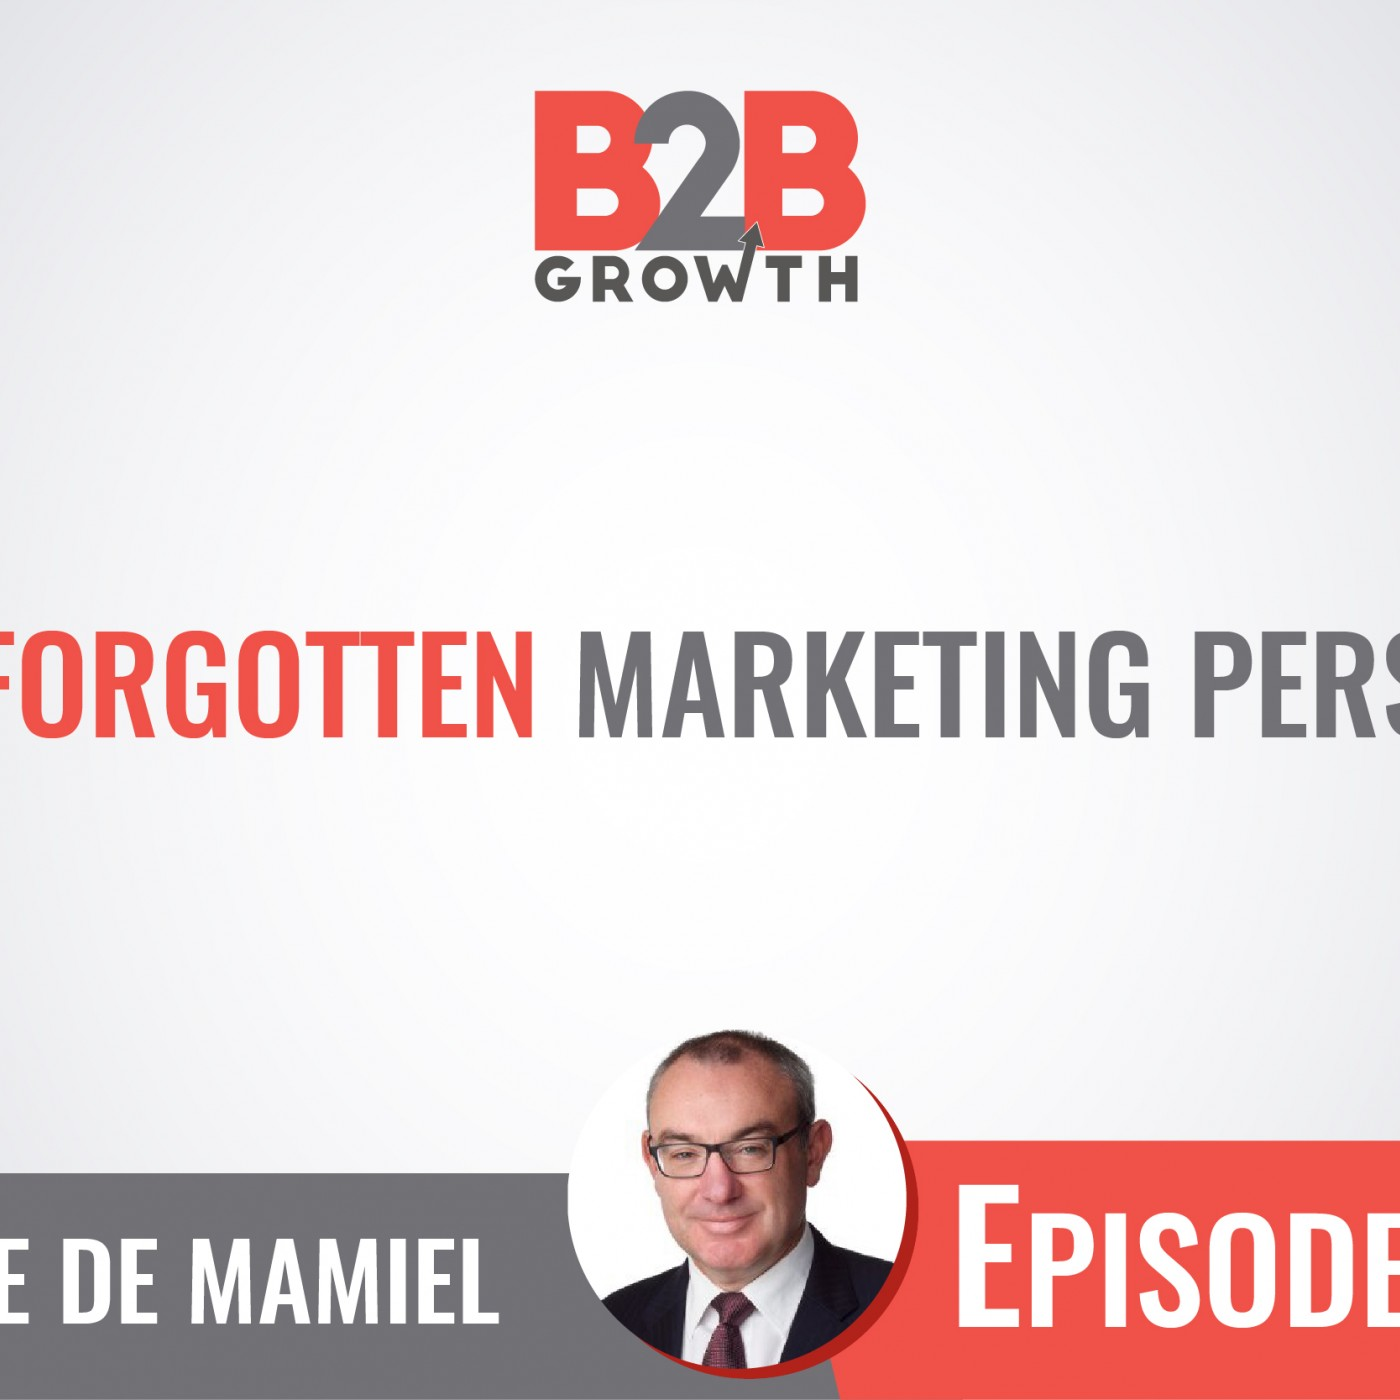 507: The Forgotten Marketing Persona w/ Steve de Mamiel